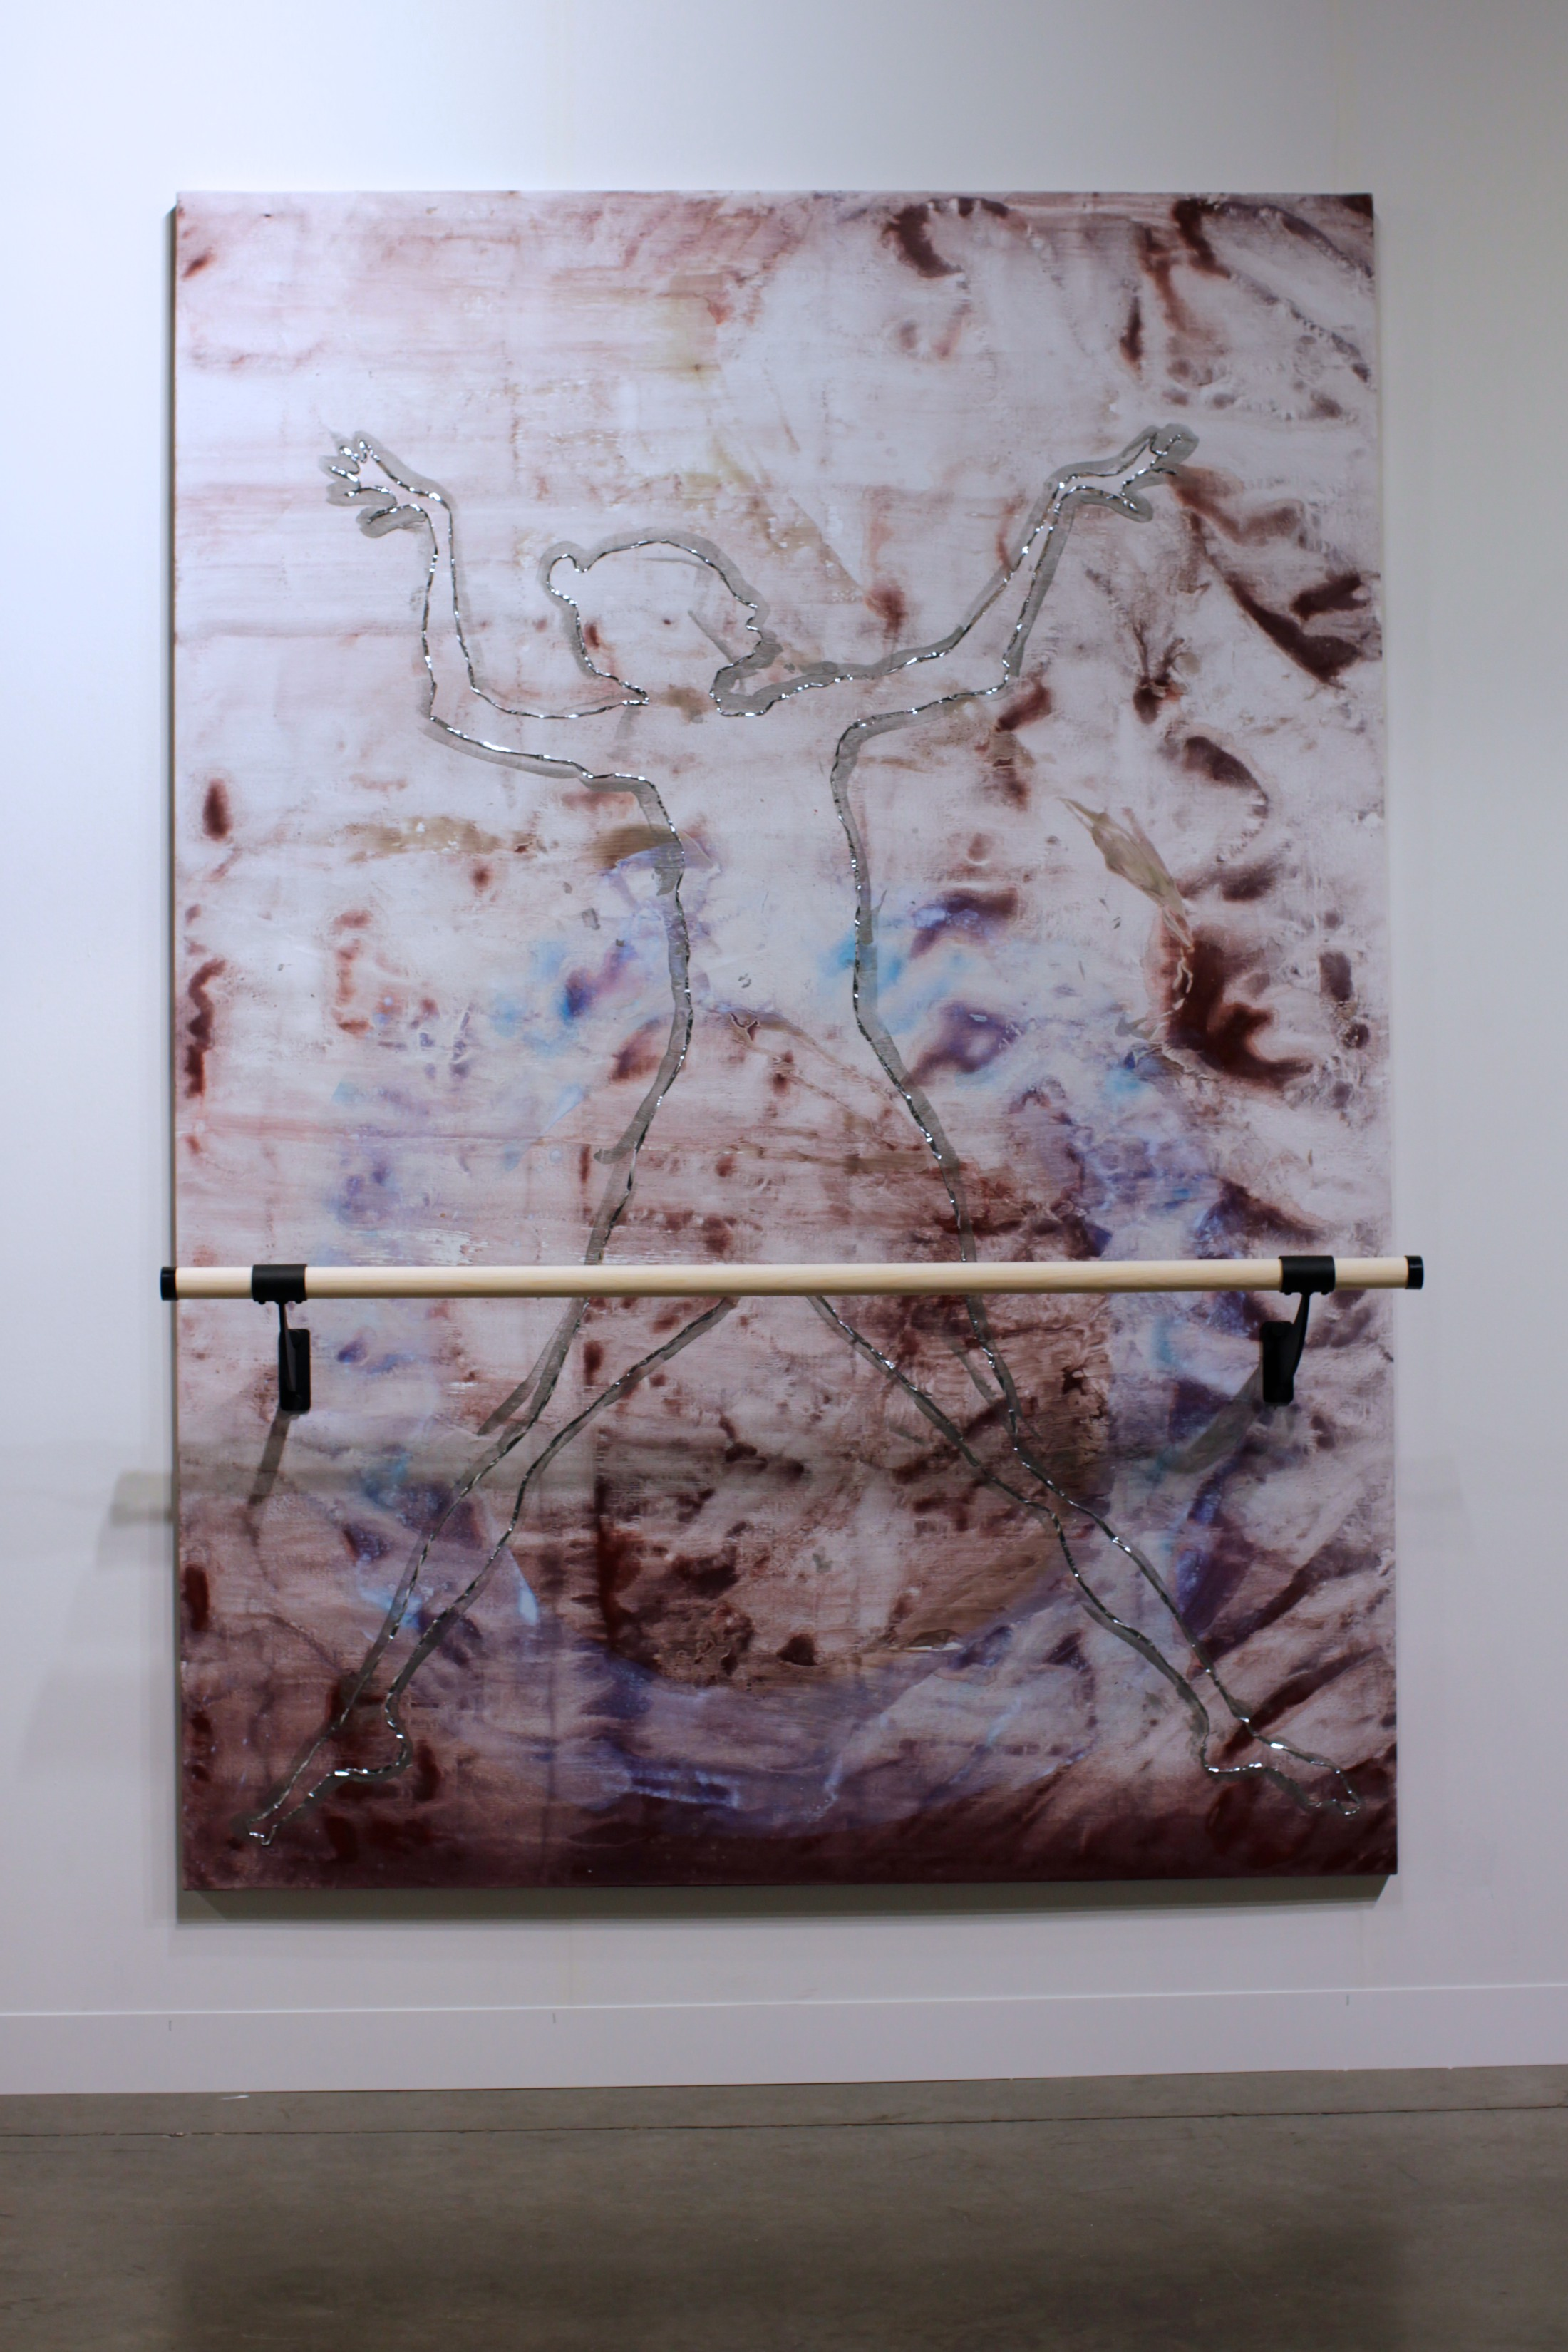 Ushering in Jupiter, 7x5 feet, acrylic, mylar tape, ballet barre on linen, 2014